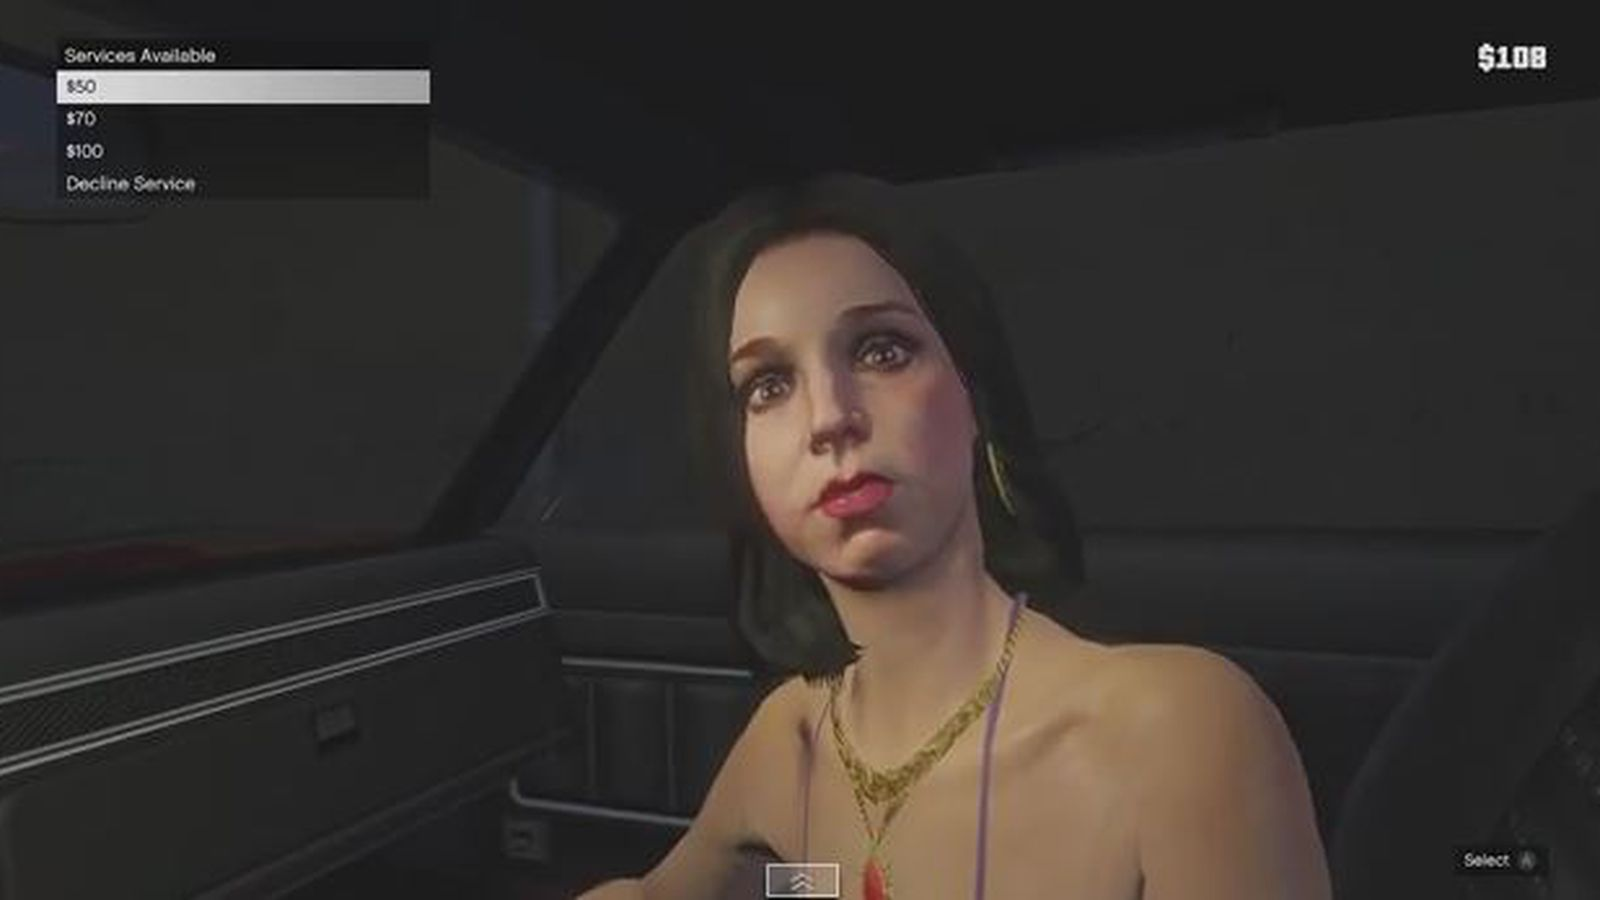 Gta 4 sex mod vidoes naked pic